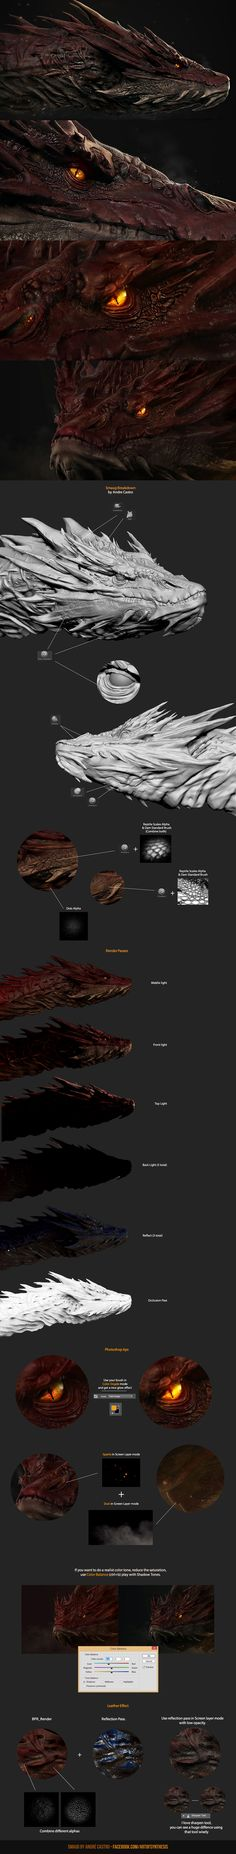 Smaug Breakdown by synthesys.deviantart.com on @DeviantArt